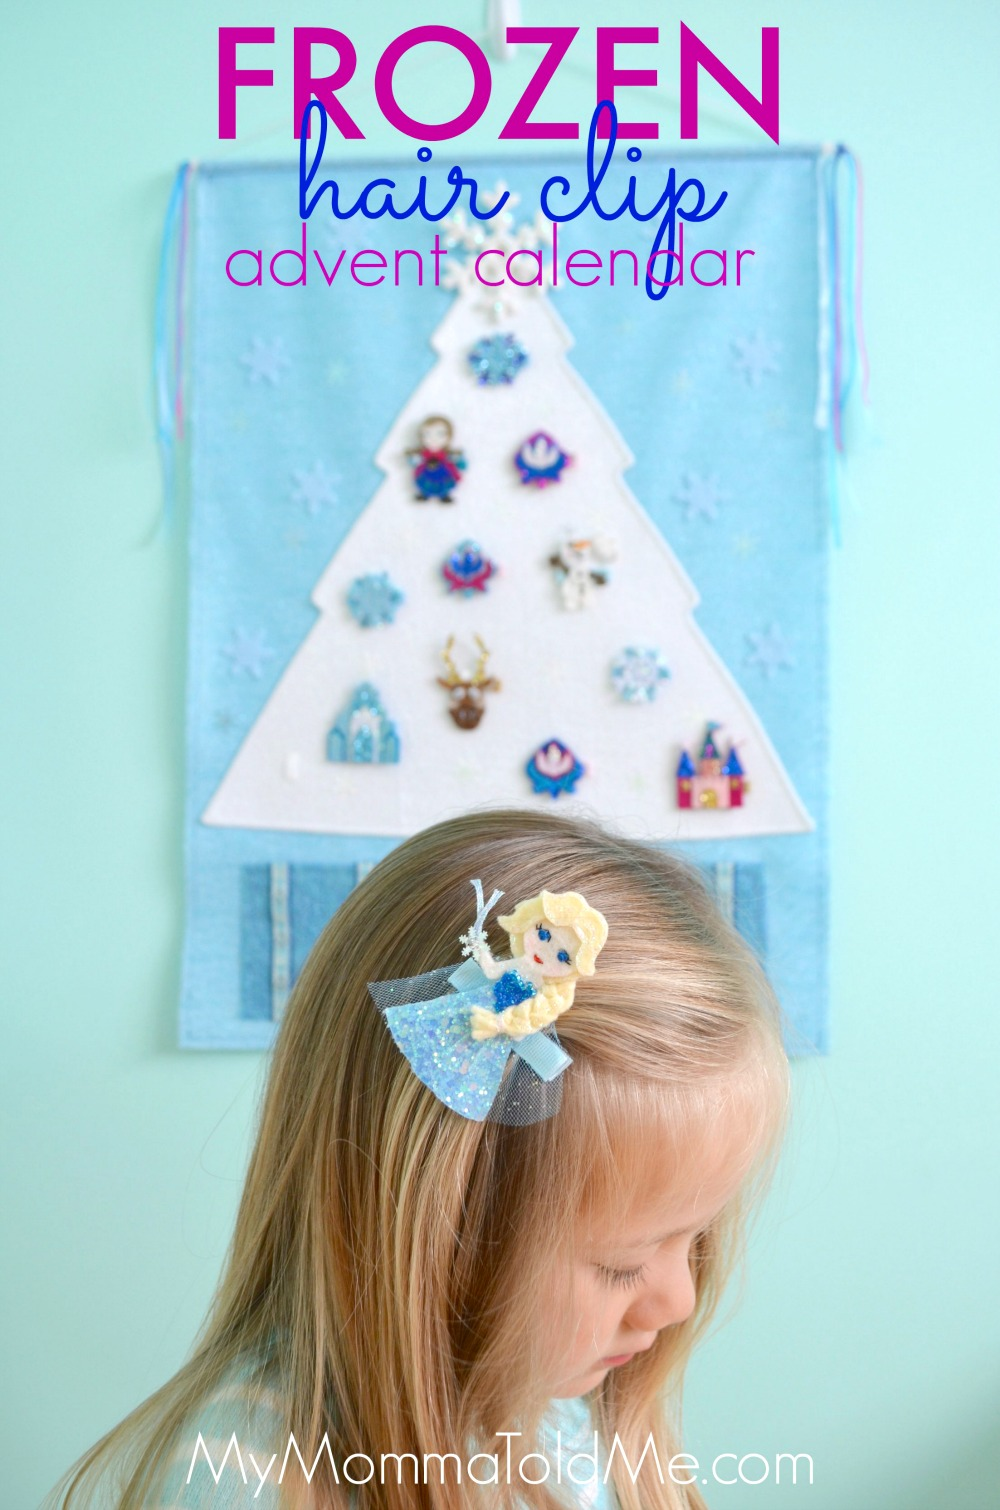 Frozen Advent Calendar Disney Frozen Christmas Decor Frozen Hair Clip Advent Calendar Frozen Christmas Tree